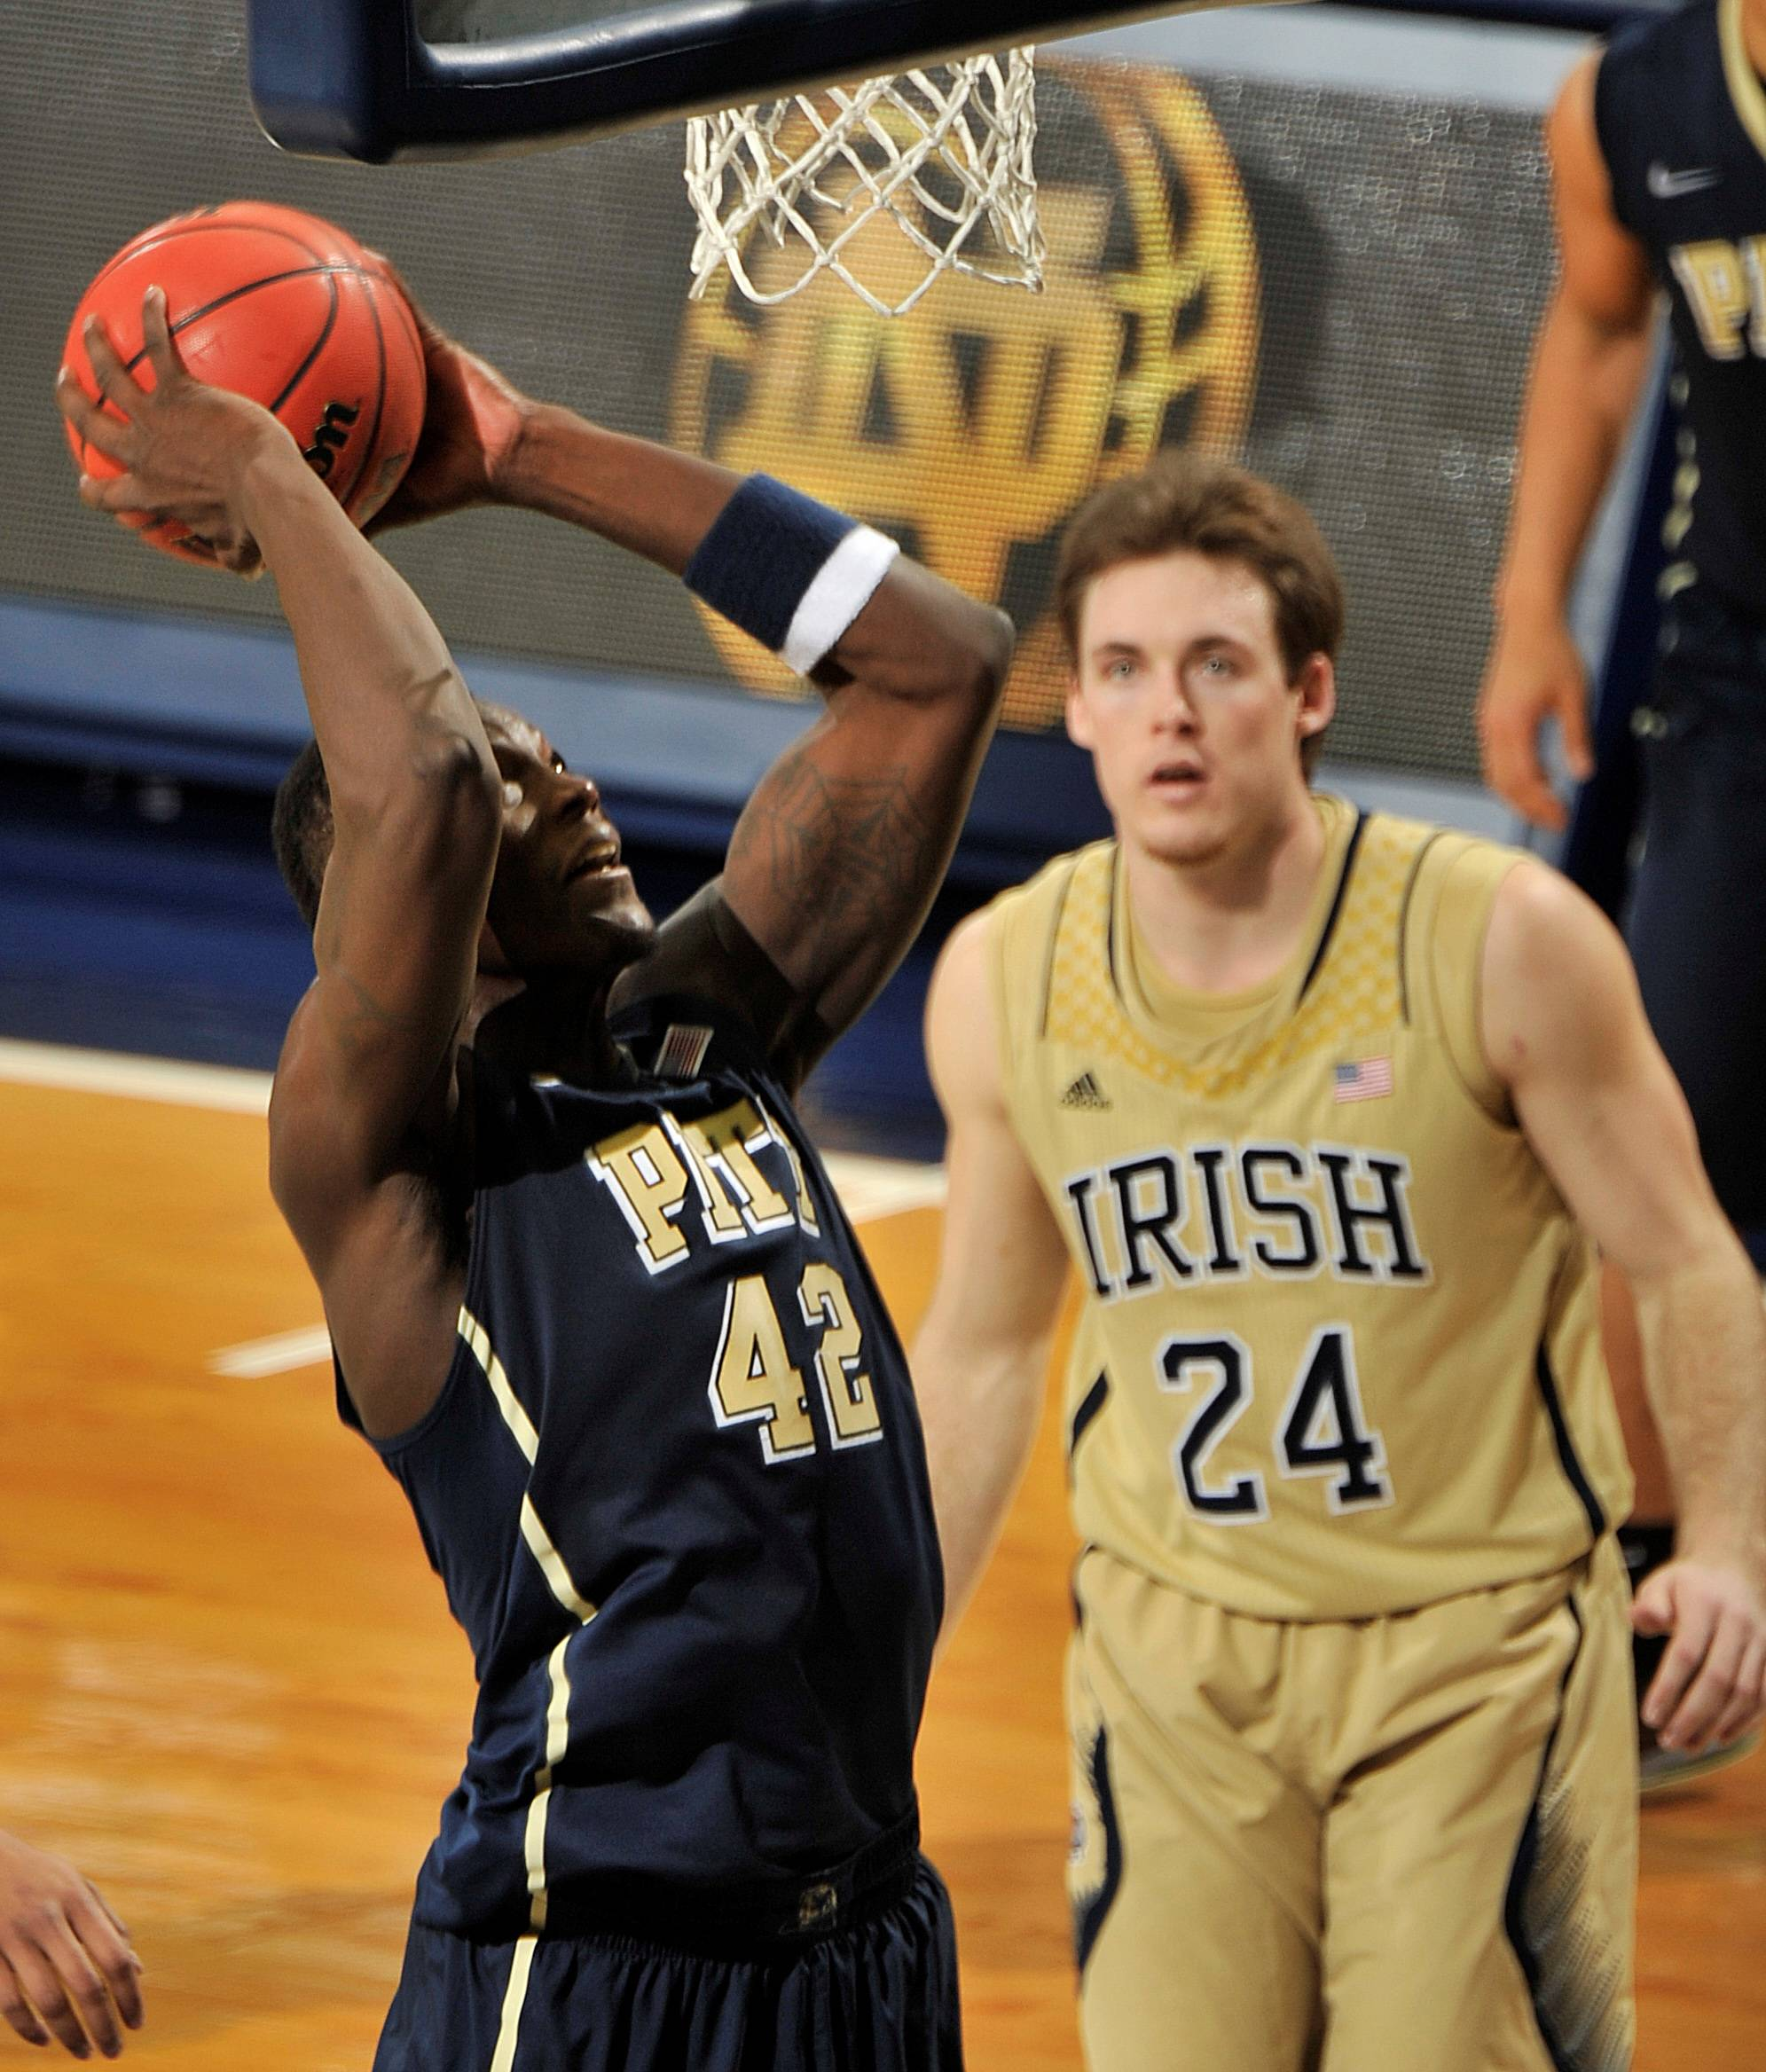 Pittsburgh forward Talib Zanna puts up a shot as Notre Dame guard Pat Connaughton looks on in the second half of an college basketball game Saturday, March 1, 2014 in South Bend, Ind. Pittsburgh won 85-81 in overtime with Zanna scoring 17 points. (AP Photo/Joe Raymond)